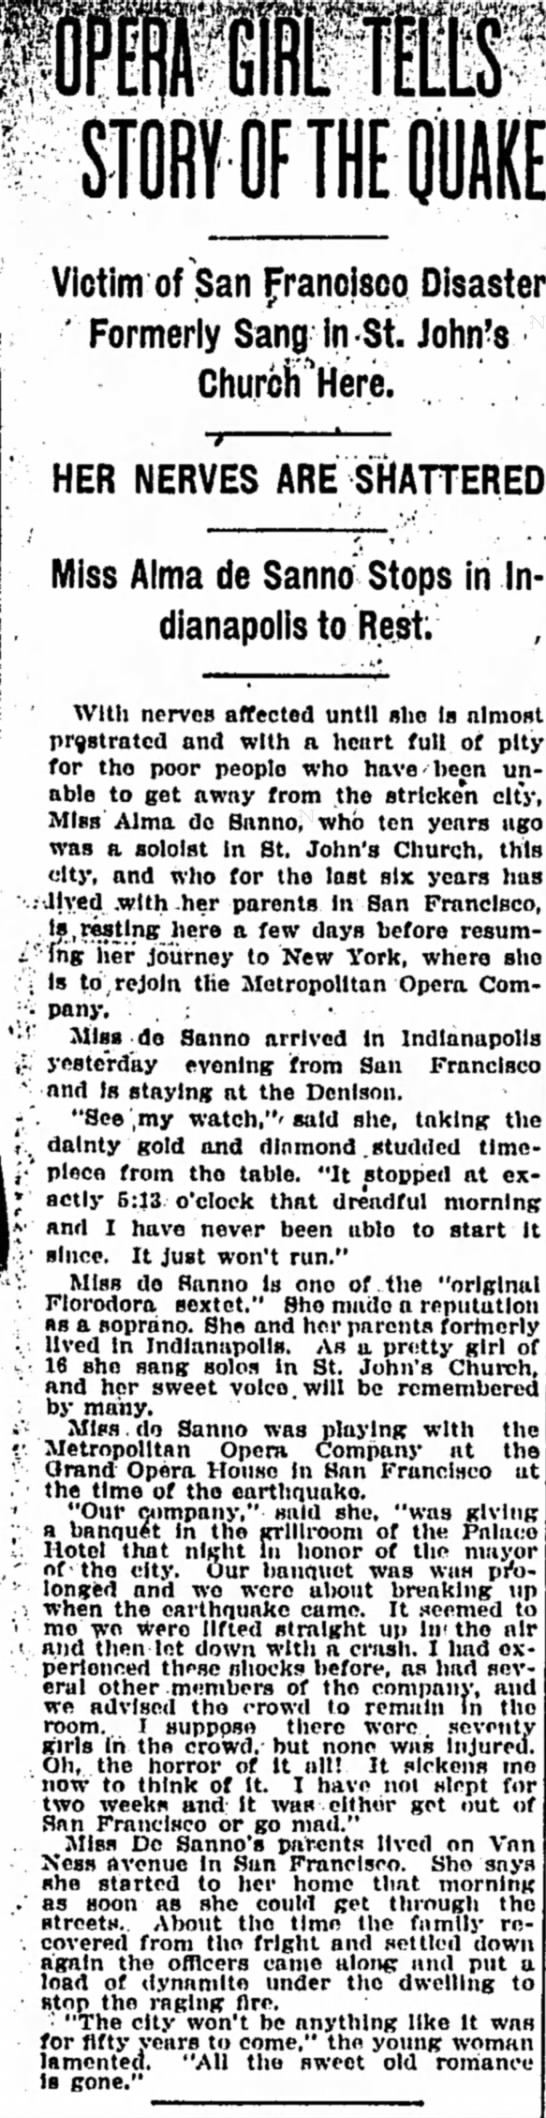 DeSanno, Alma The Indianapolis Star, Indianapolis, IN May 11 1906, Pg 7 - mm m rrnA 1 STORY OF THE QUAKE Victim of San...